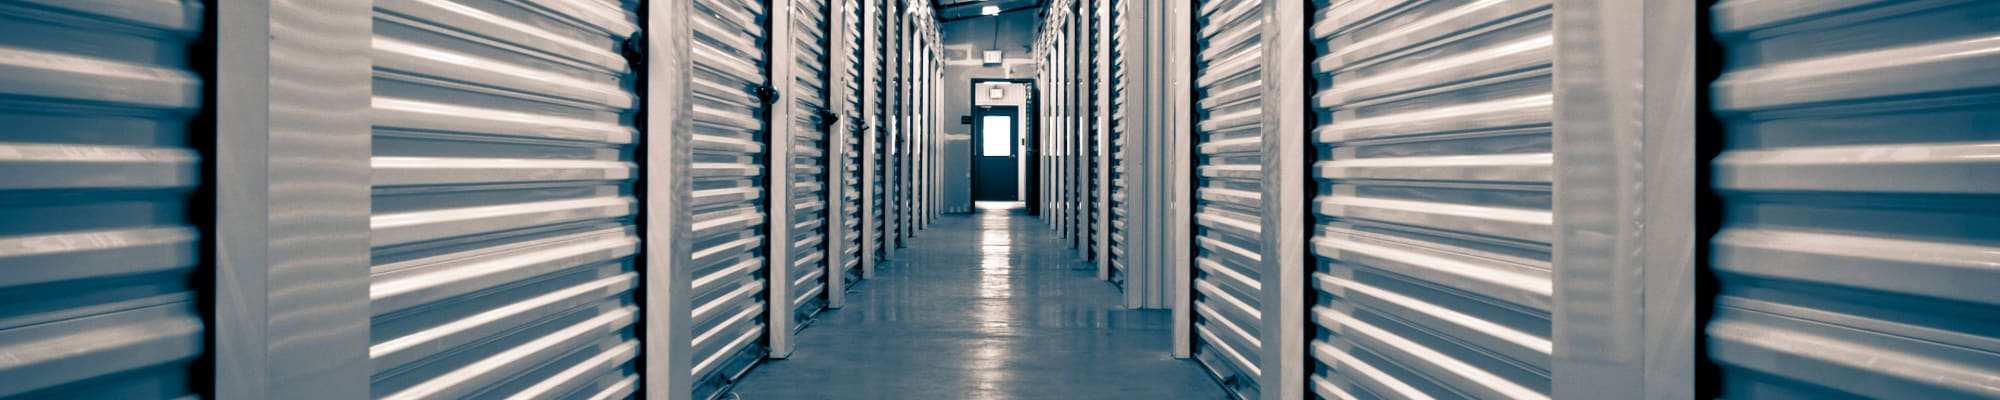 Store It All Self Storage - Lakeway storage units for rent in Lakeway, Texas